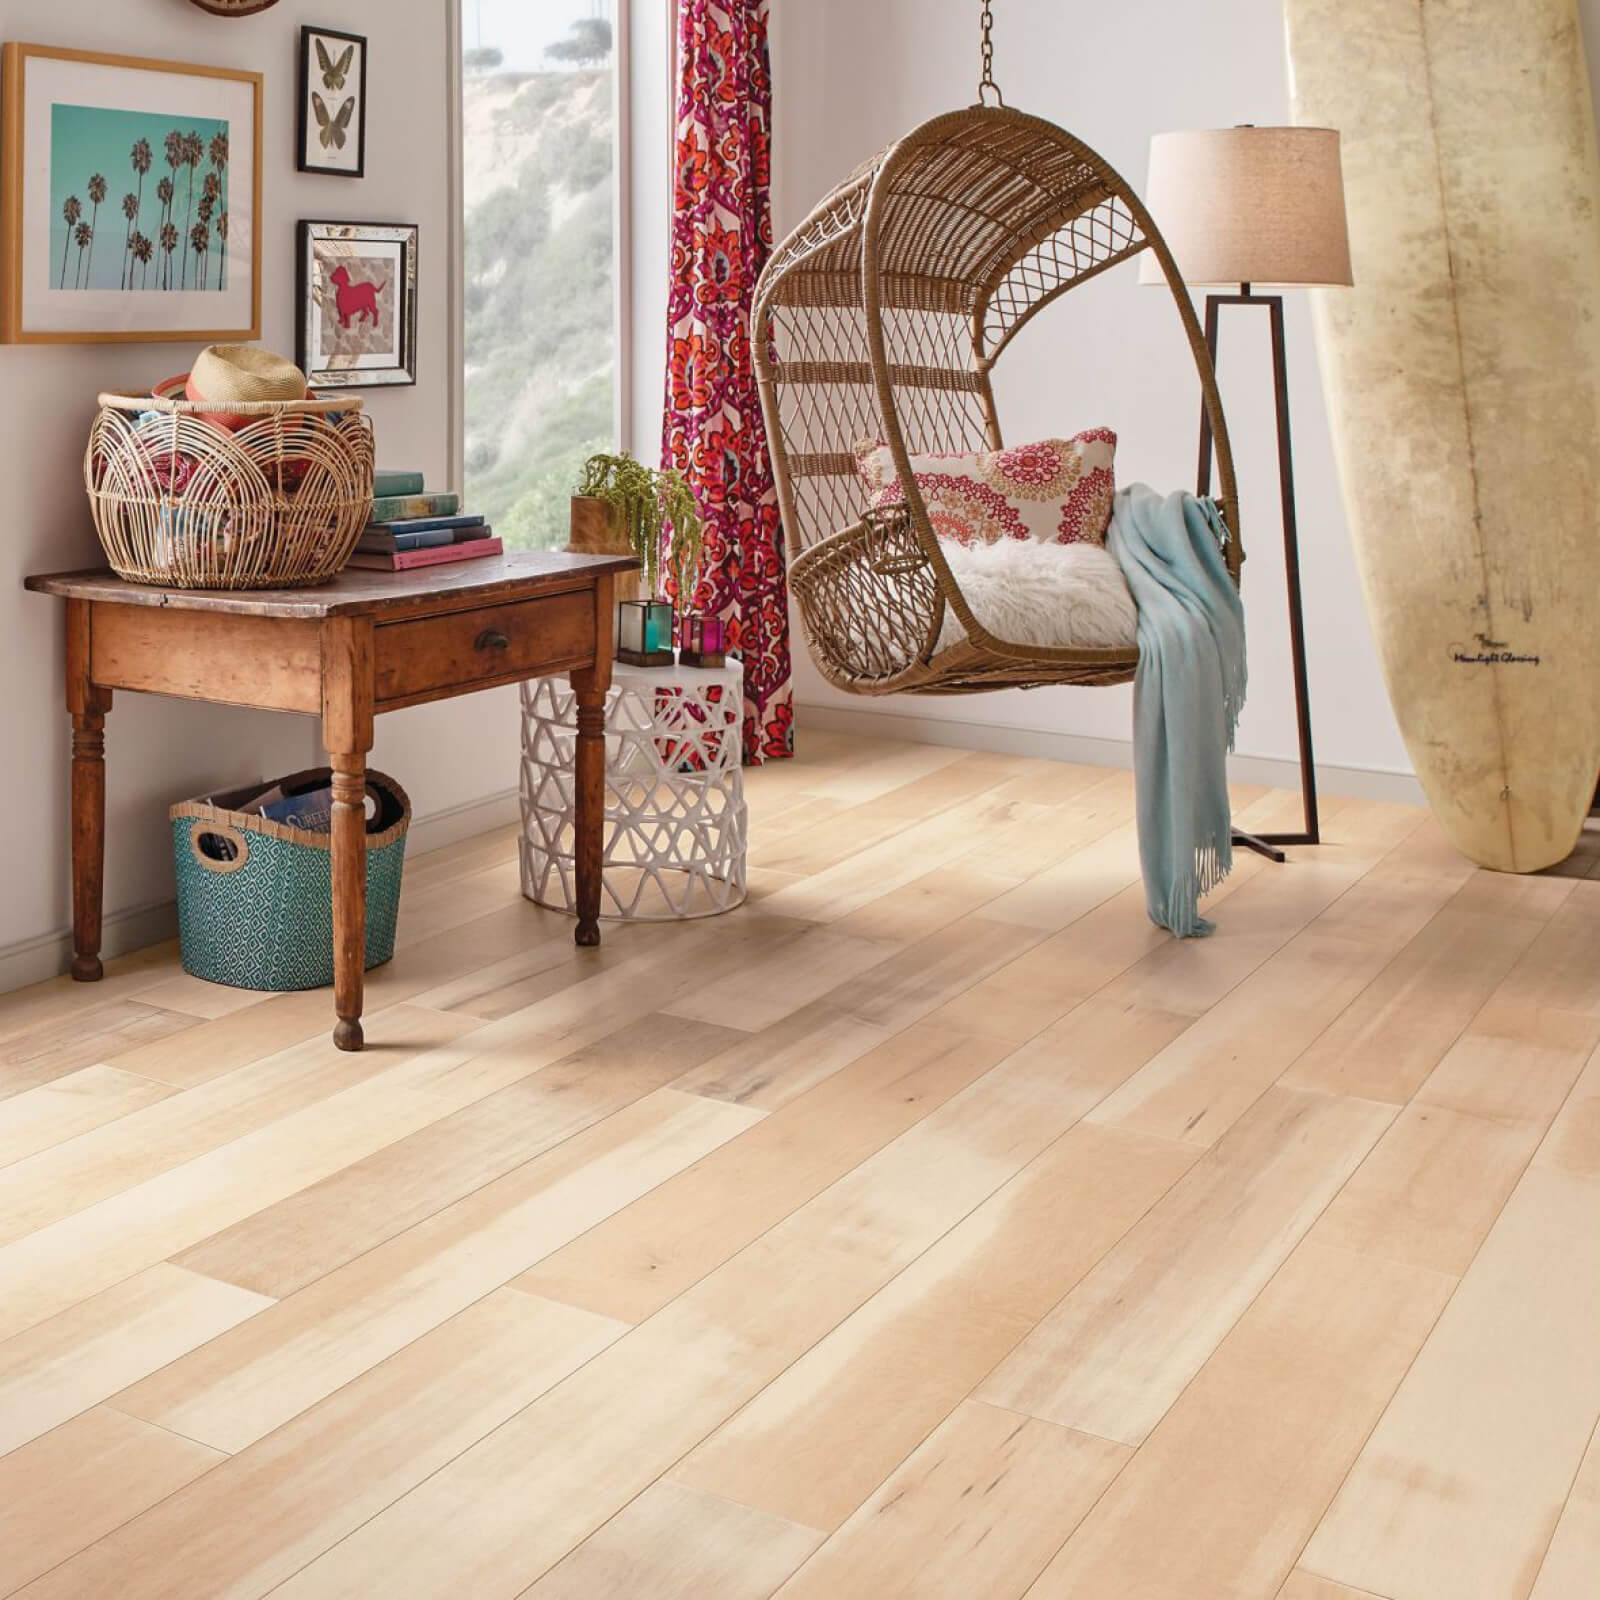 Maple Solid Hardwood | Broadway Carpets, Inc